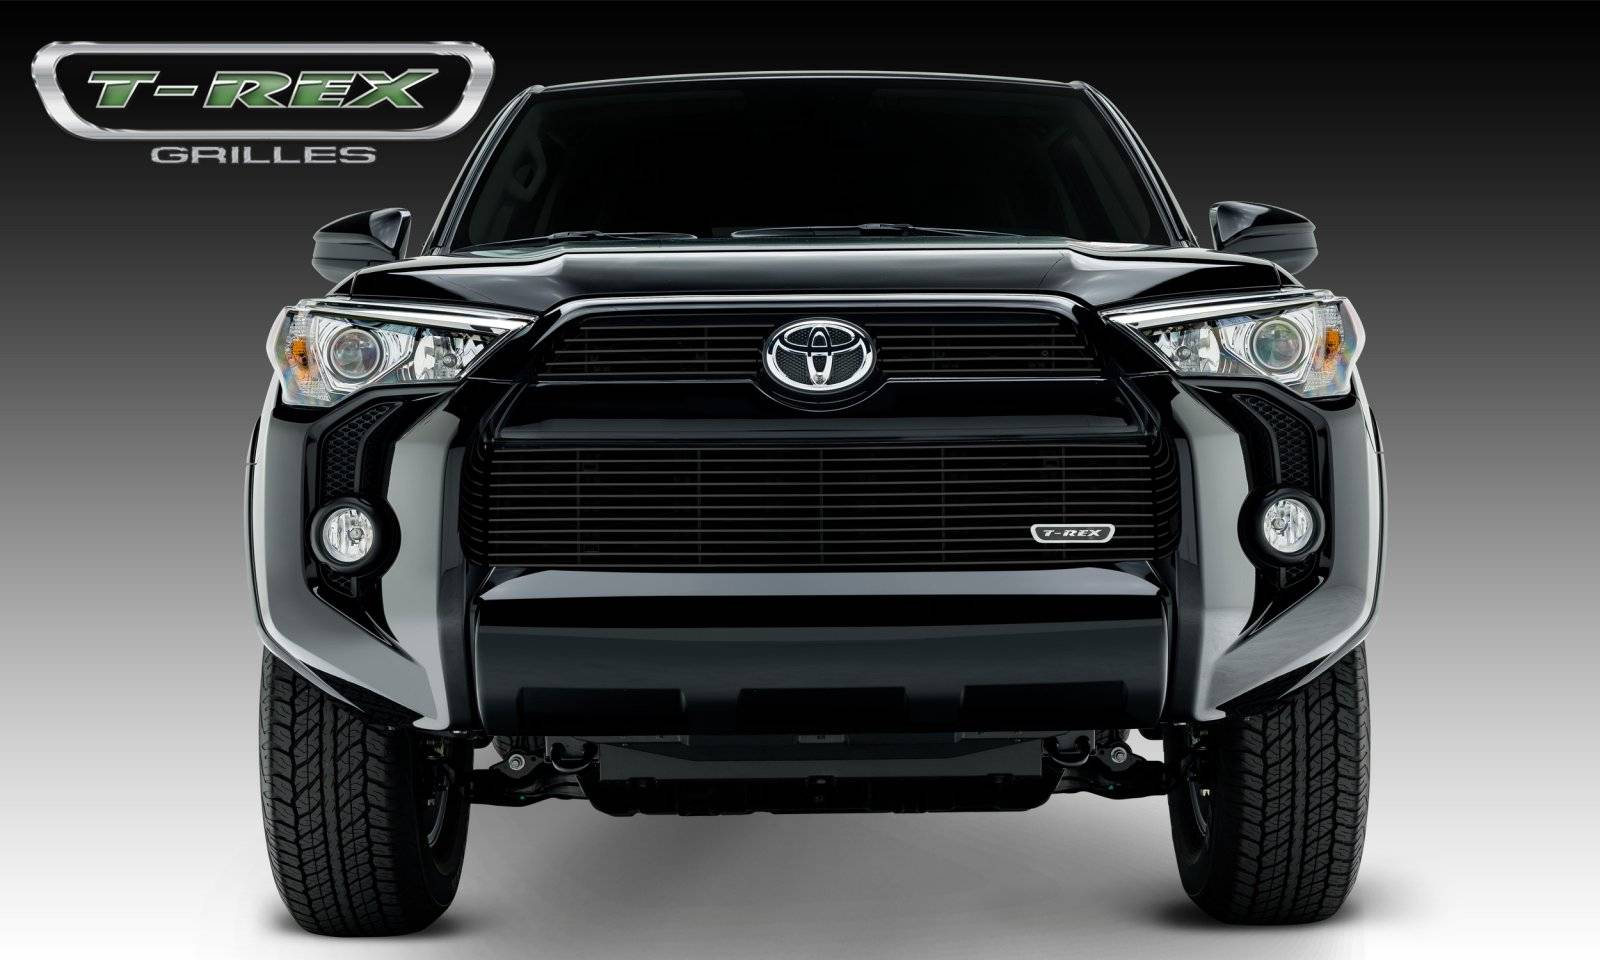 T-REX Toyota 4 Runner Billet Grille, Main & Bumper, Overlay, 3 Pc's, Black Powdercoated Aluminum Bars, Fits Trail & SR5 but not Limited - Pt # 21949B